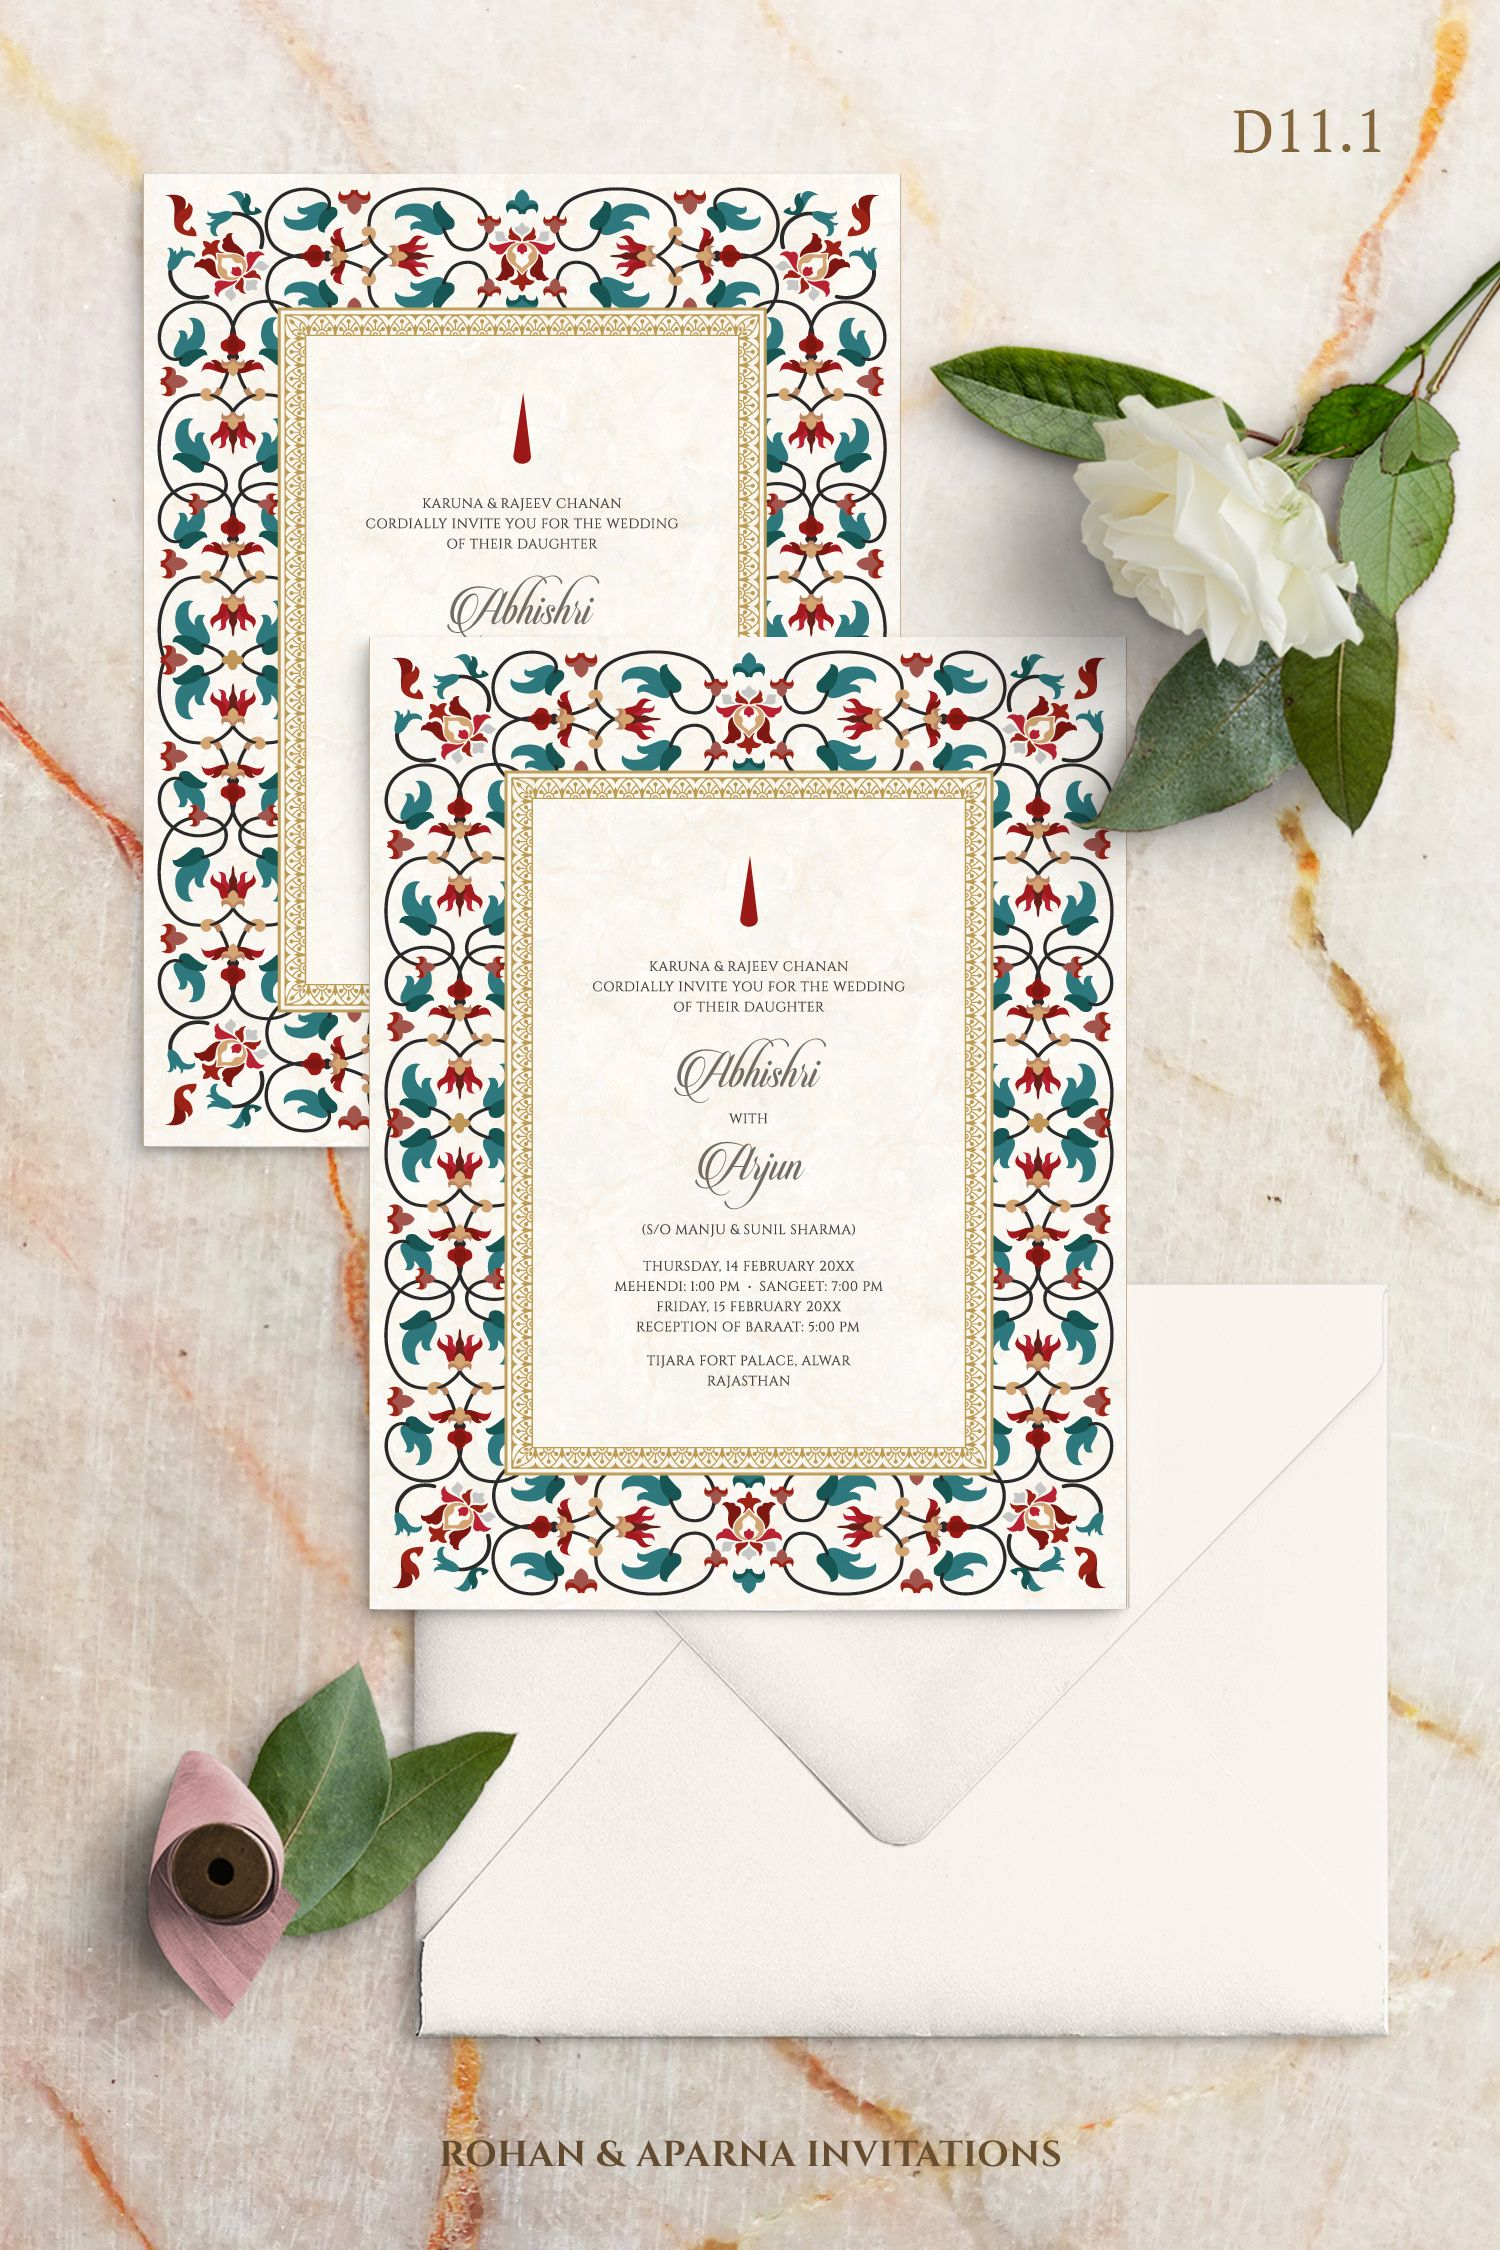 Mughal inlay work inspired wedding invitation concept. For